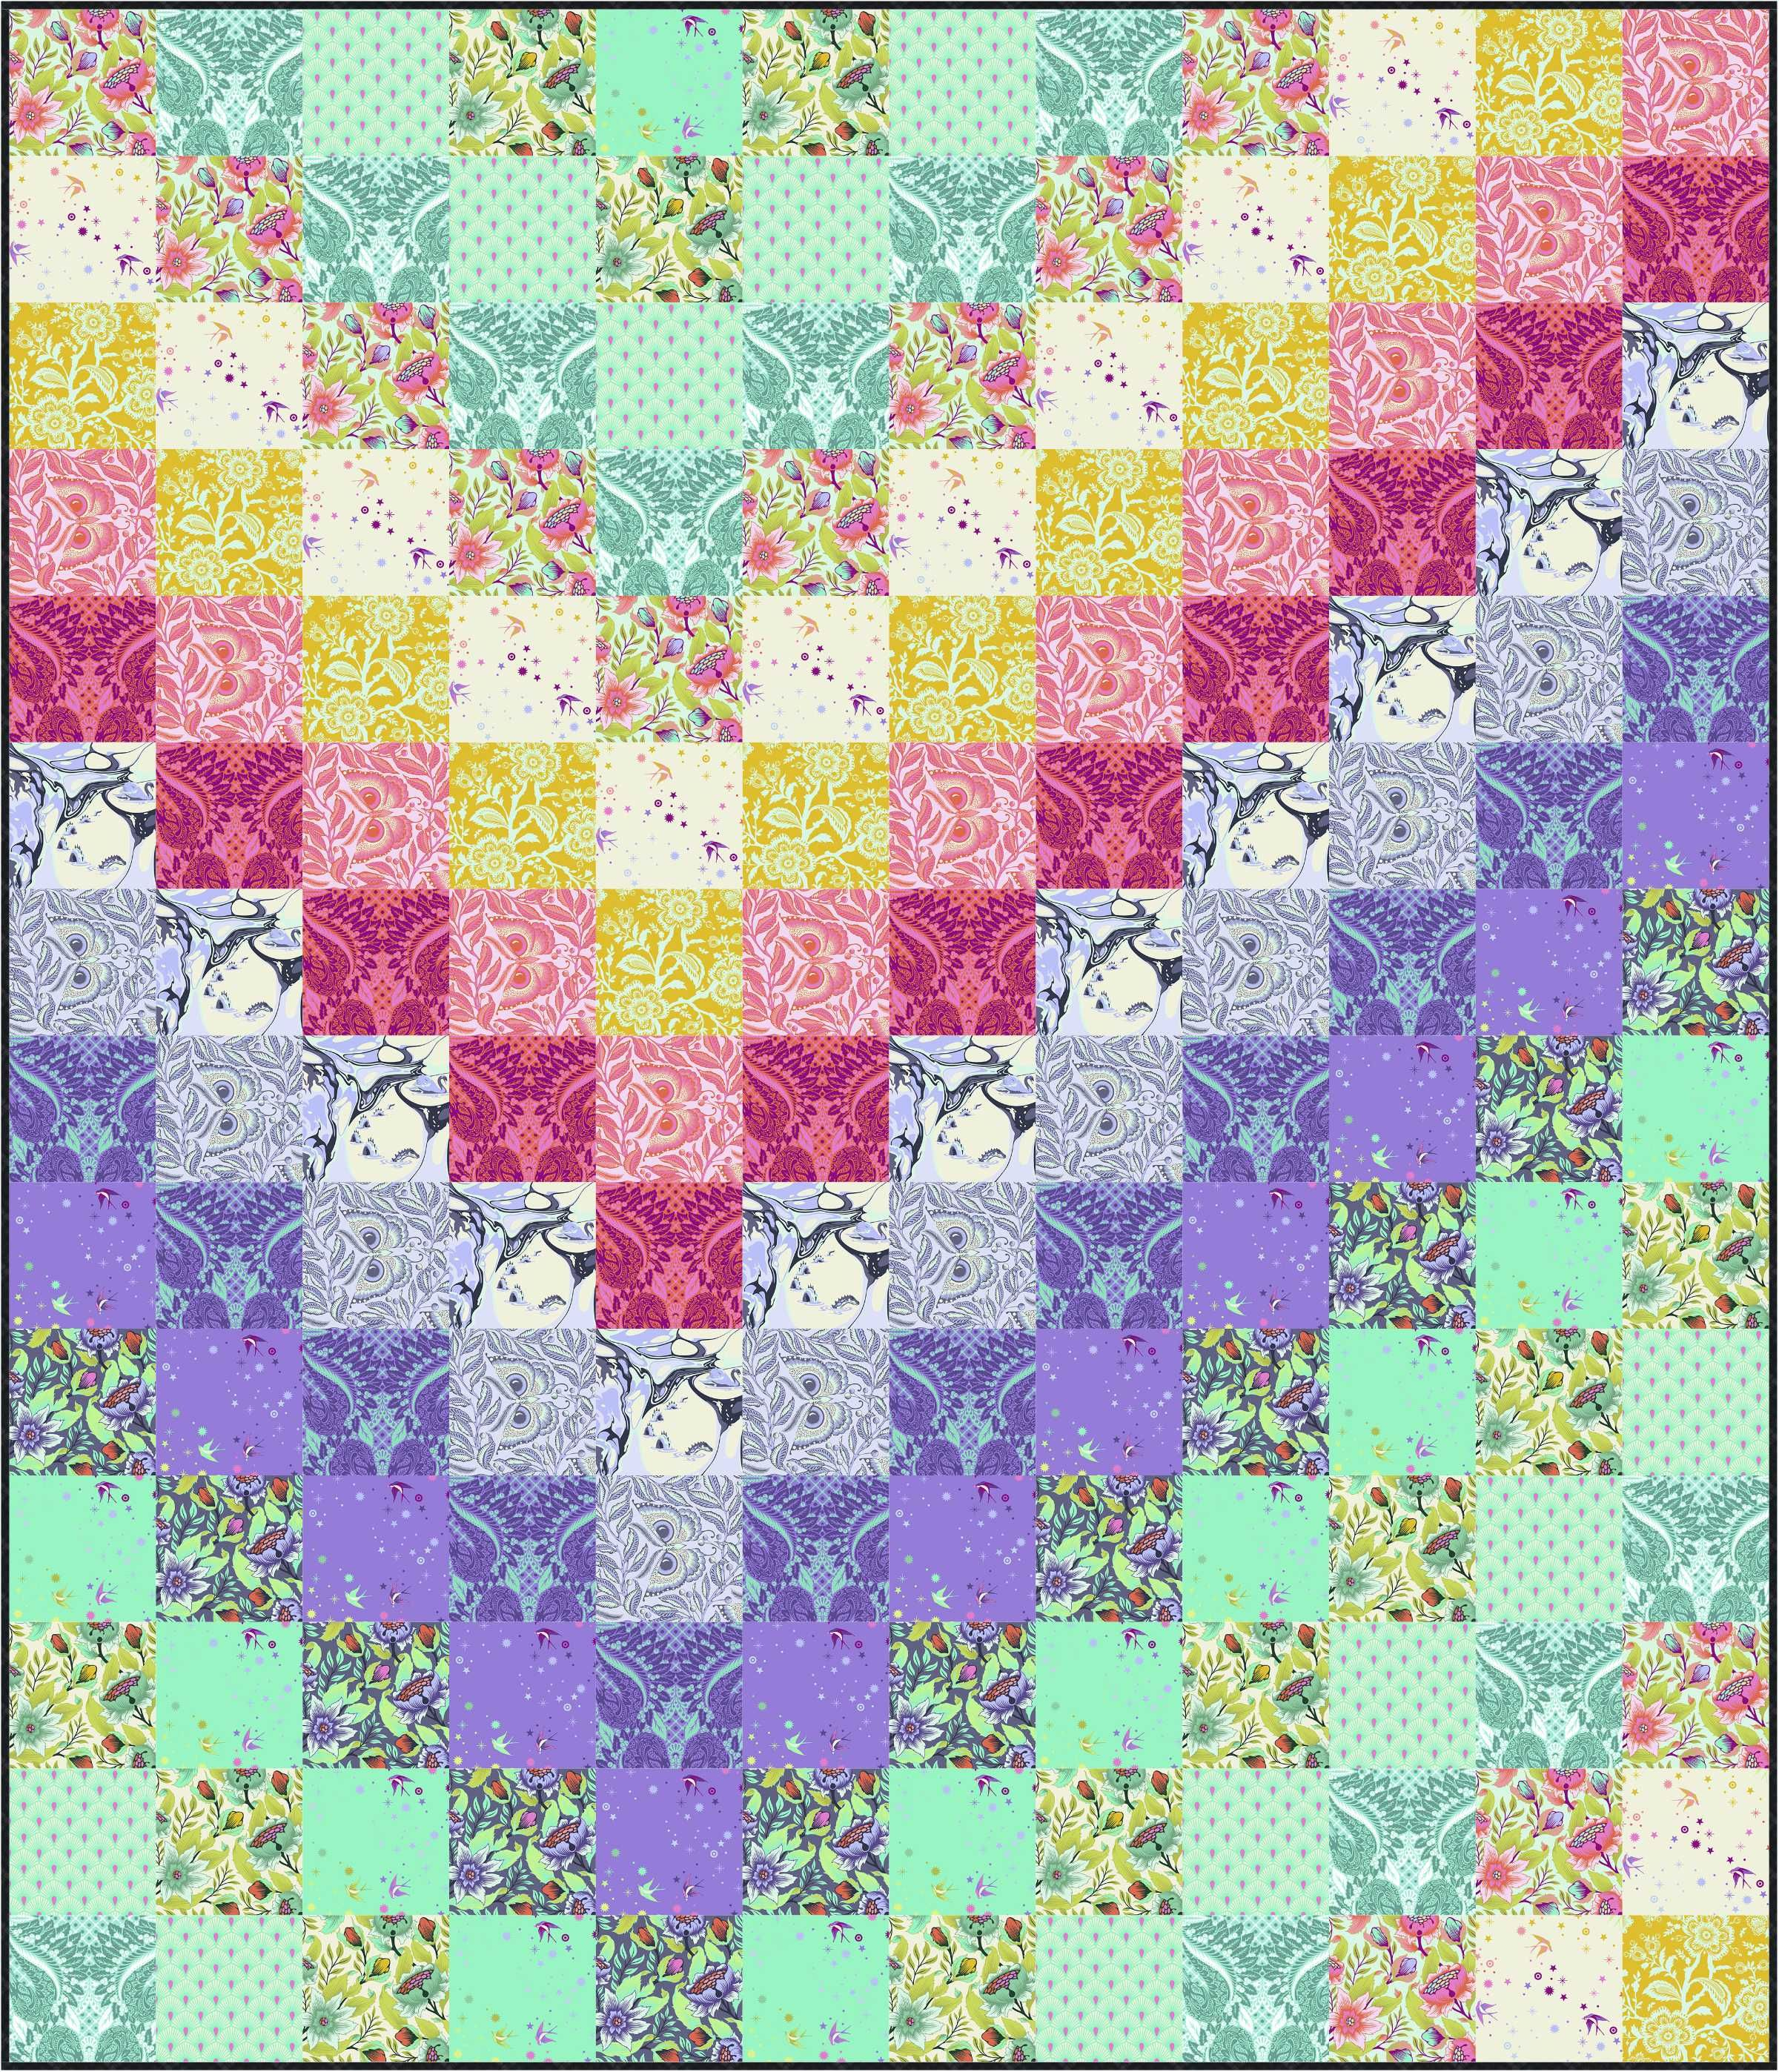 Sew A Color By Number Quilt Free Quilt Pattern With